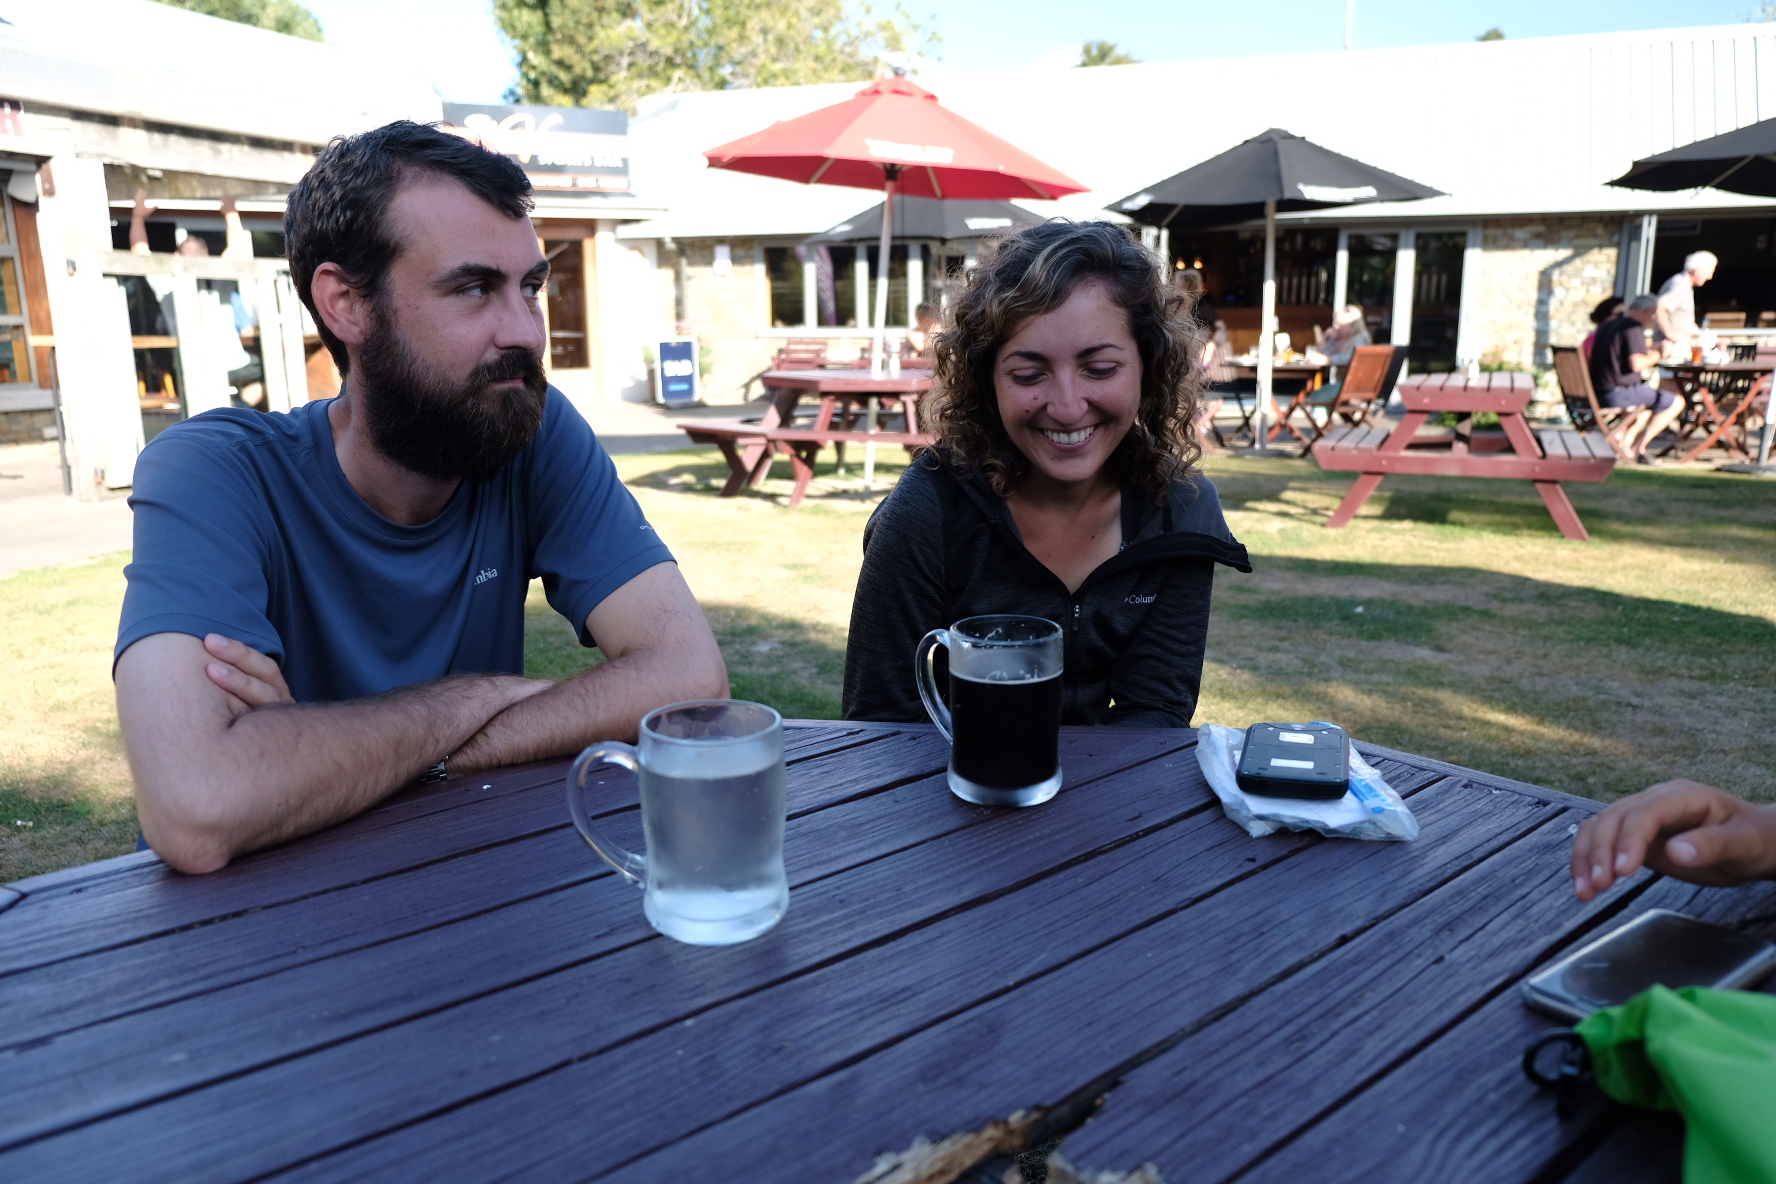 Francois and Marion in Geraldine. That is not water but cider. Francois is obviously still thinking of the Nutella/cheese combo.